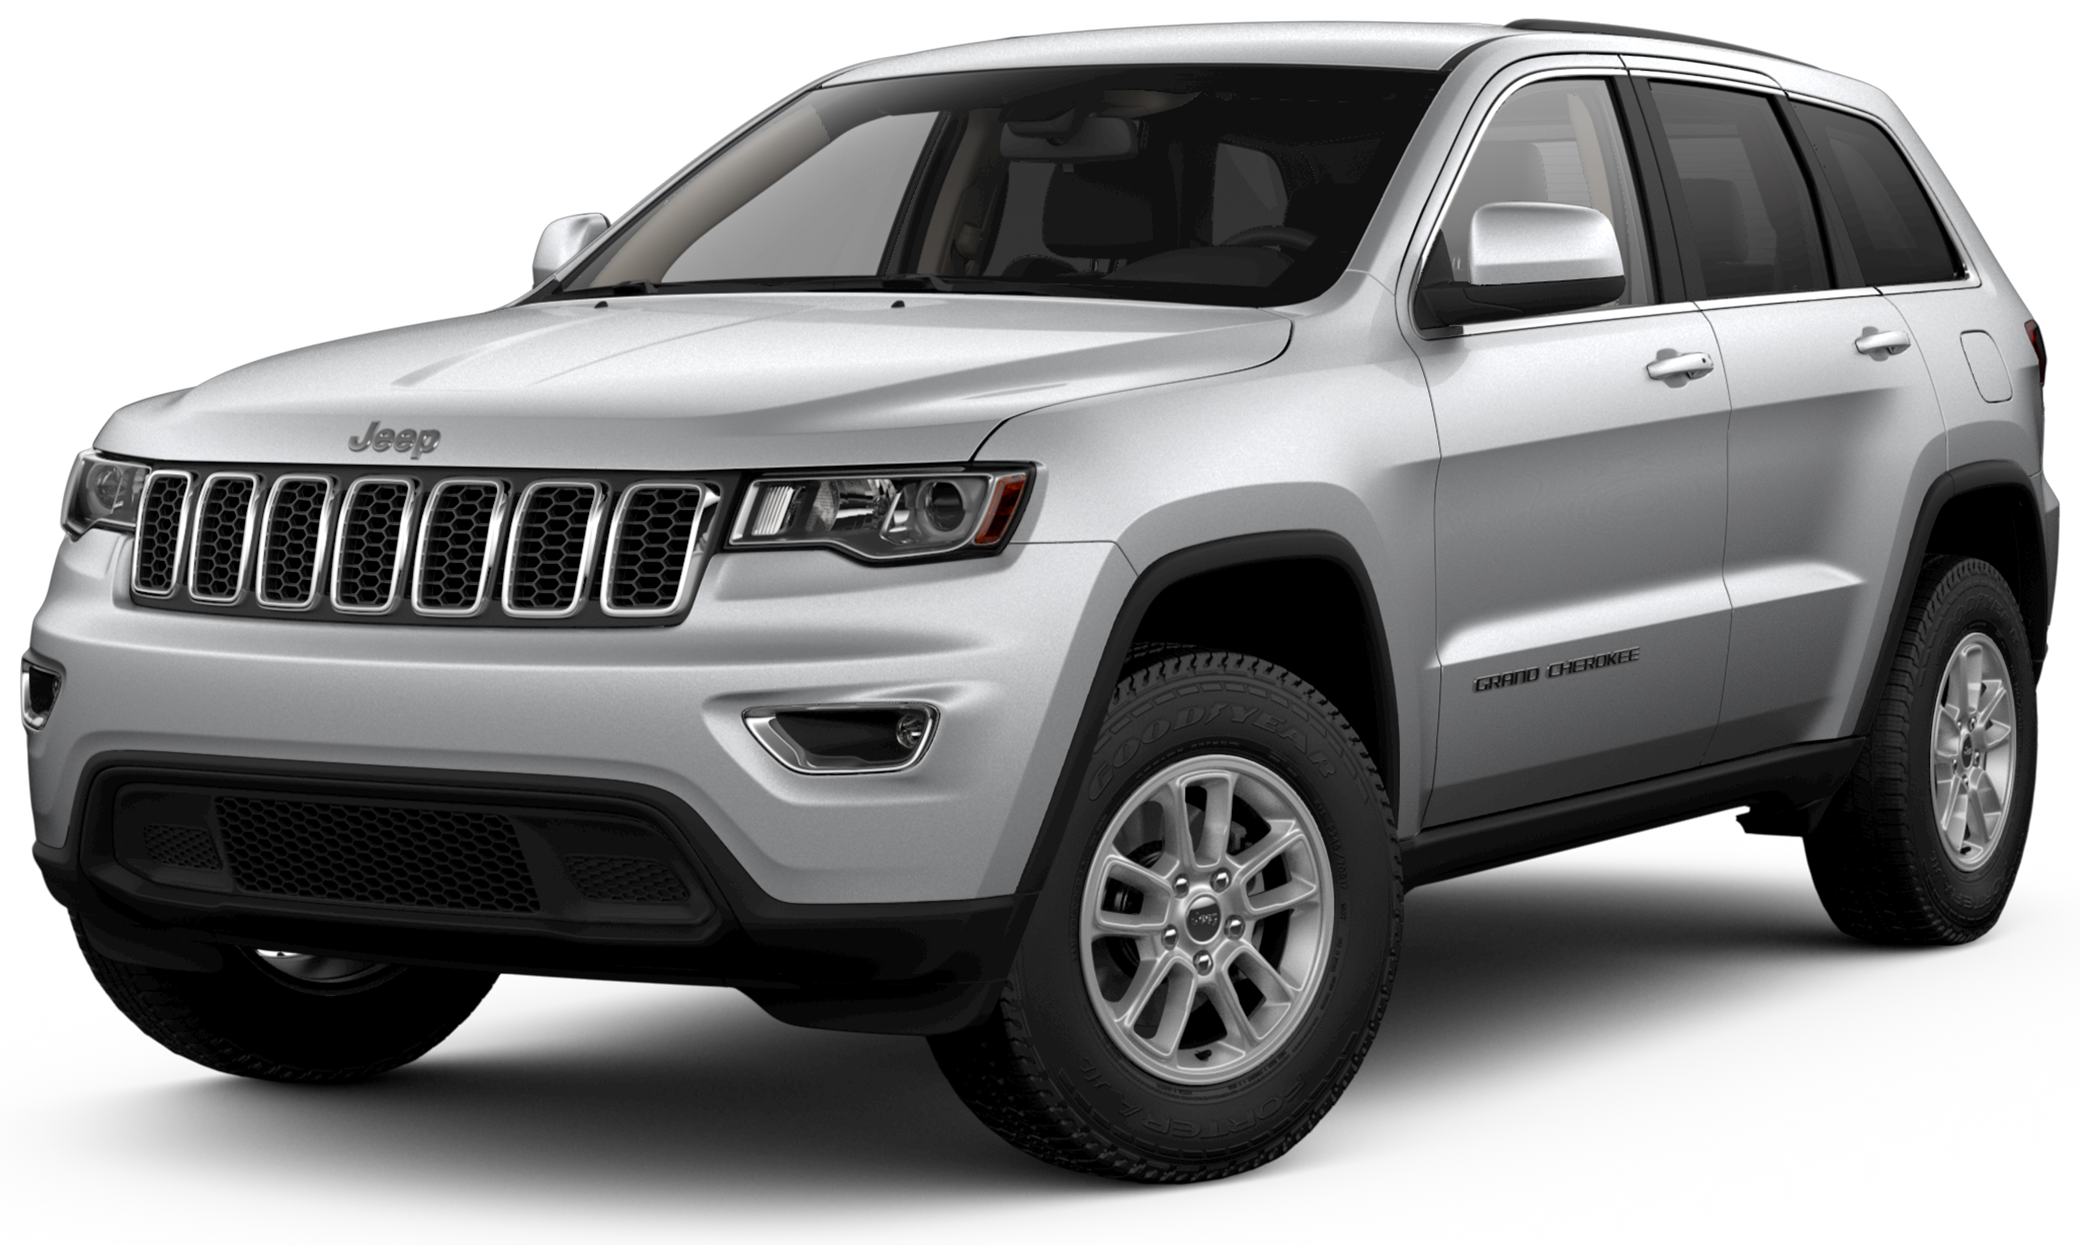 2020 jeep grand cherokee incentives  specials  u0026 offers in owings mills md